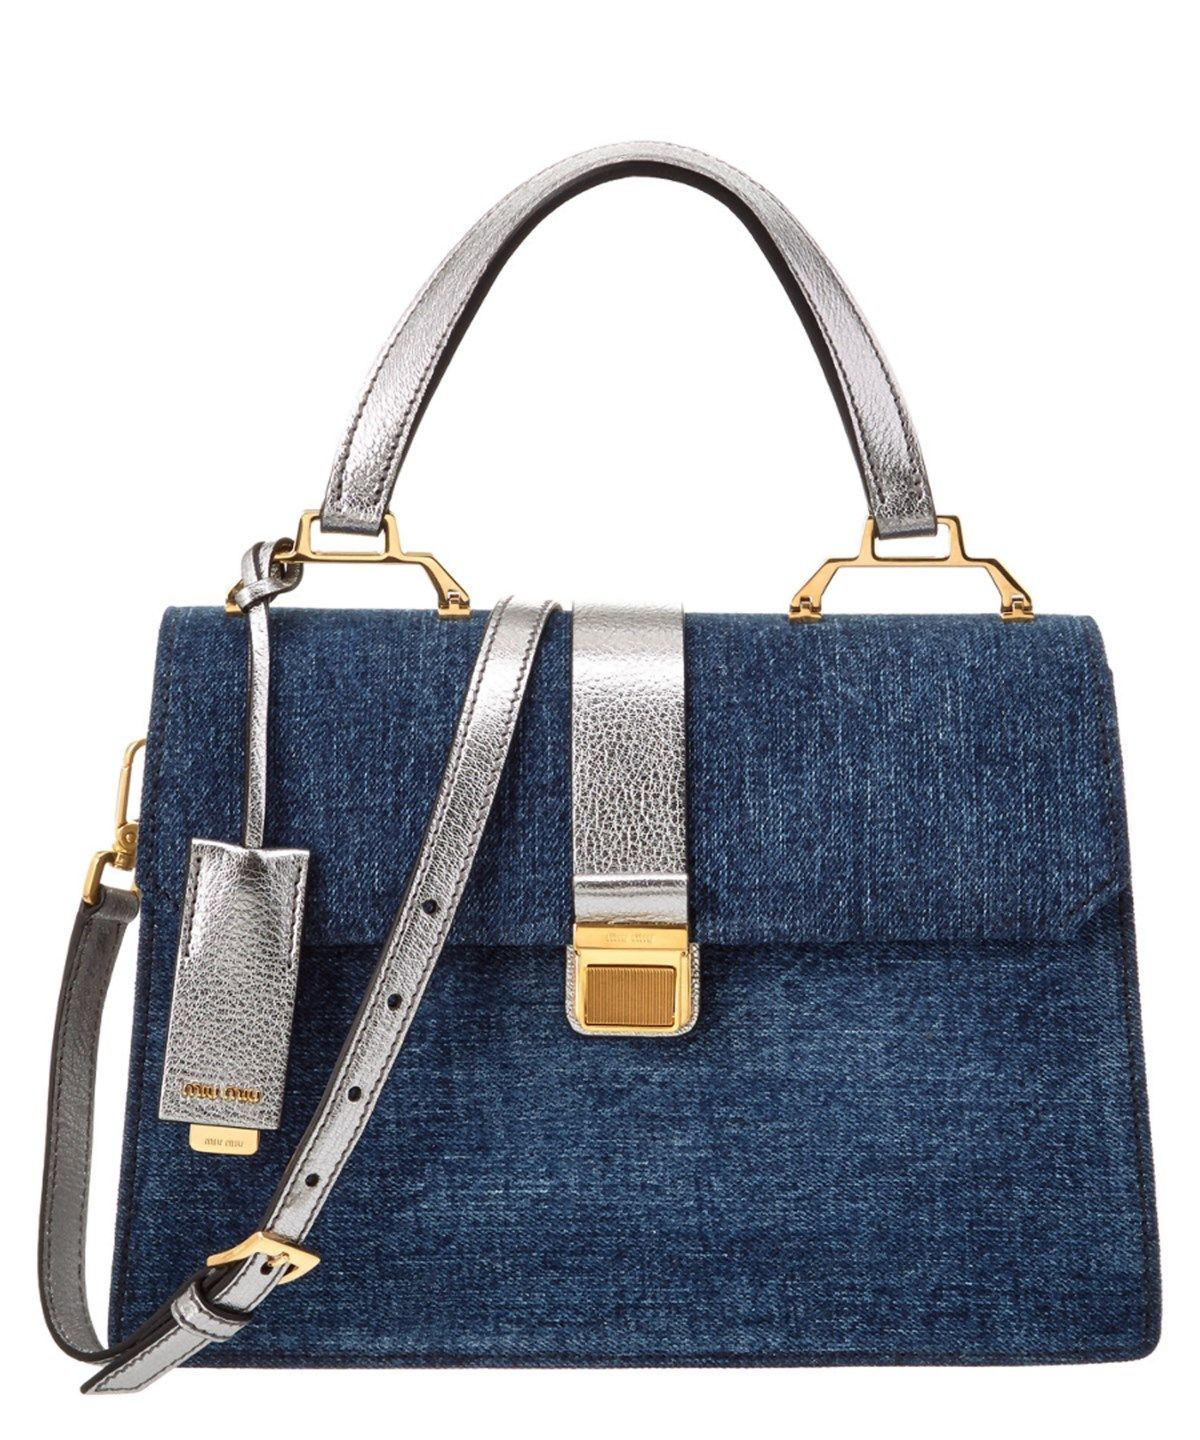 MIU MIU Miu Miu Madras  Amp  Denim Top Handle Satchel .  miumiu  bags   lining  denim  satchel  shoulder bags  suede  hand bags   169fddd699229